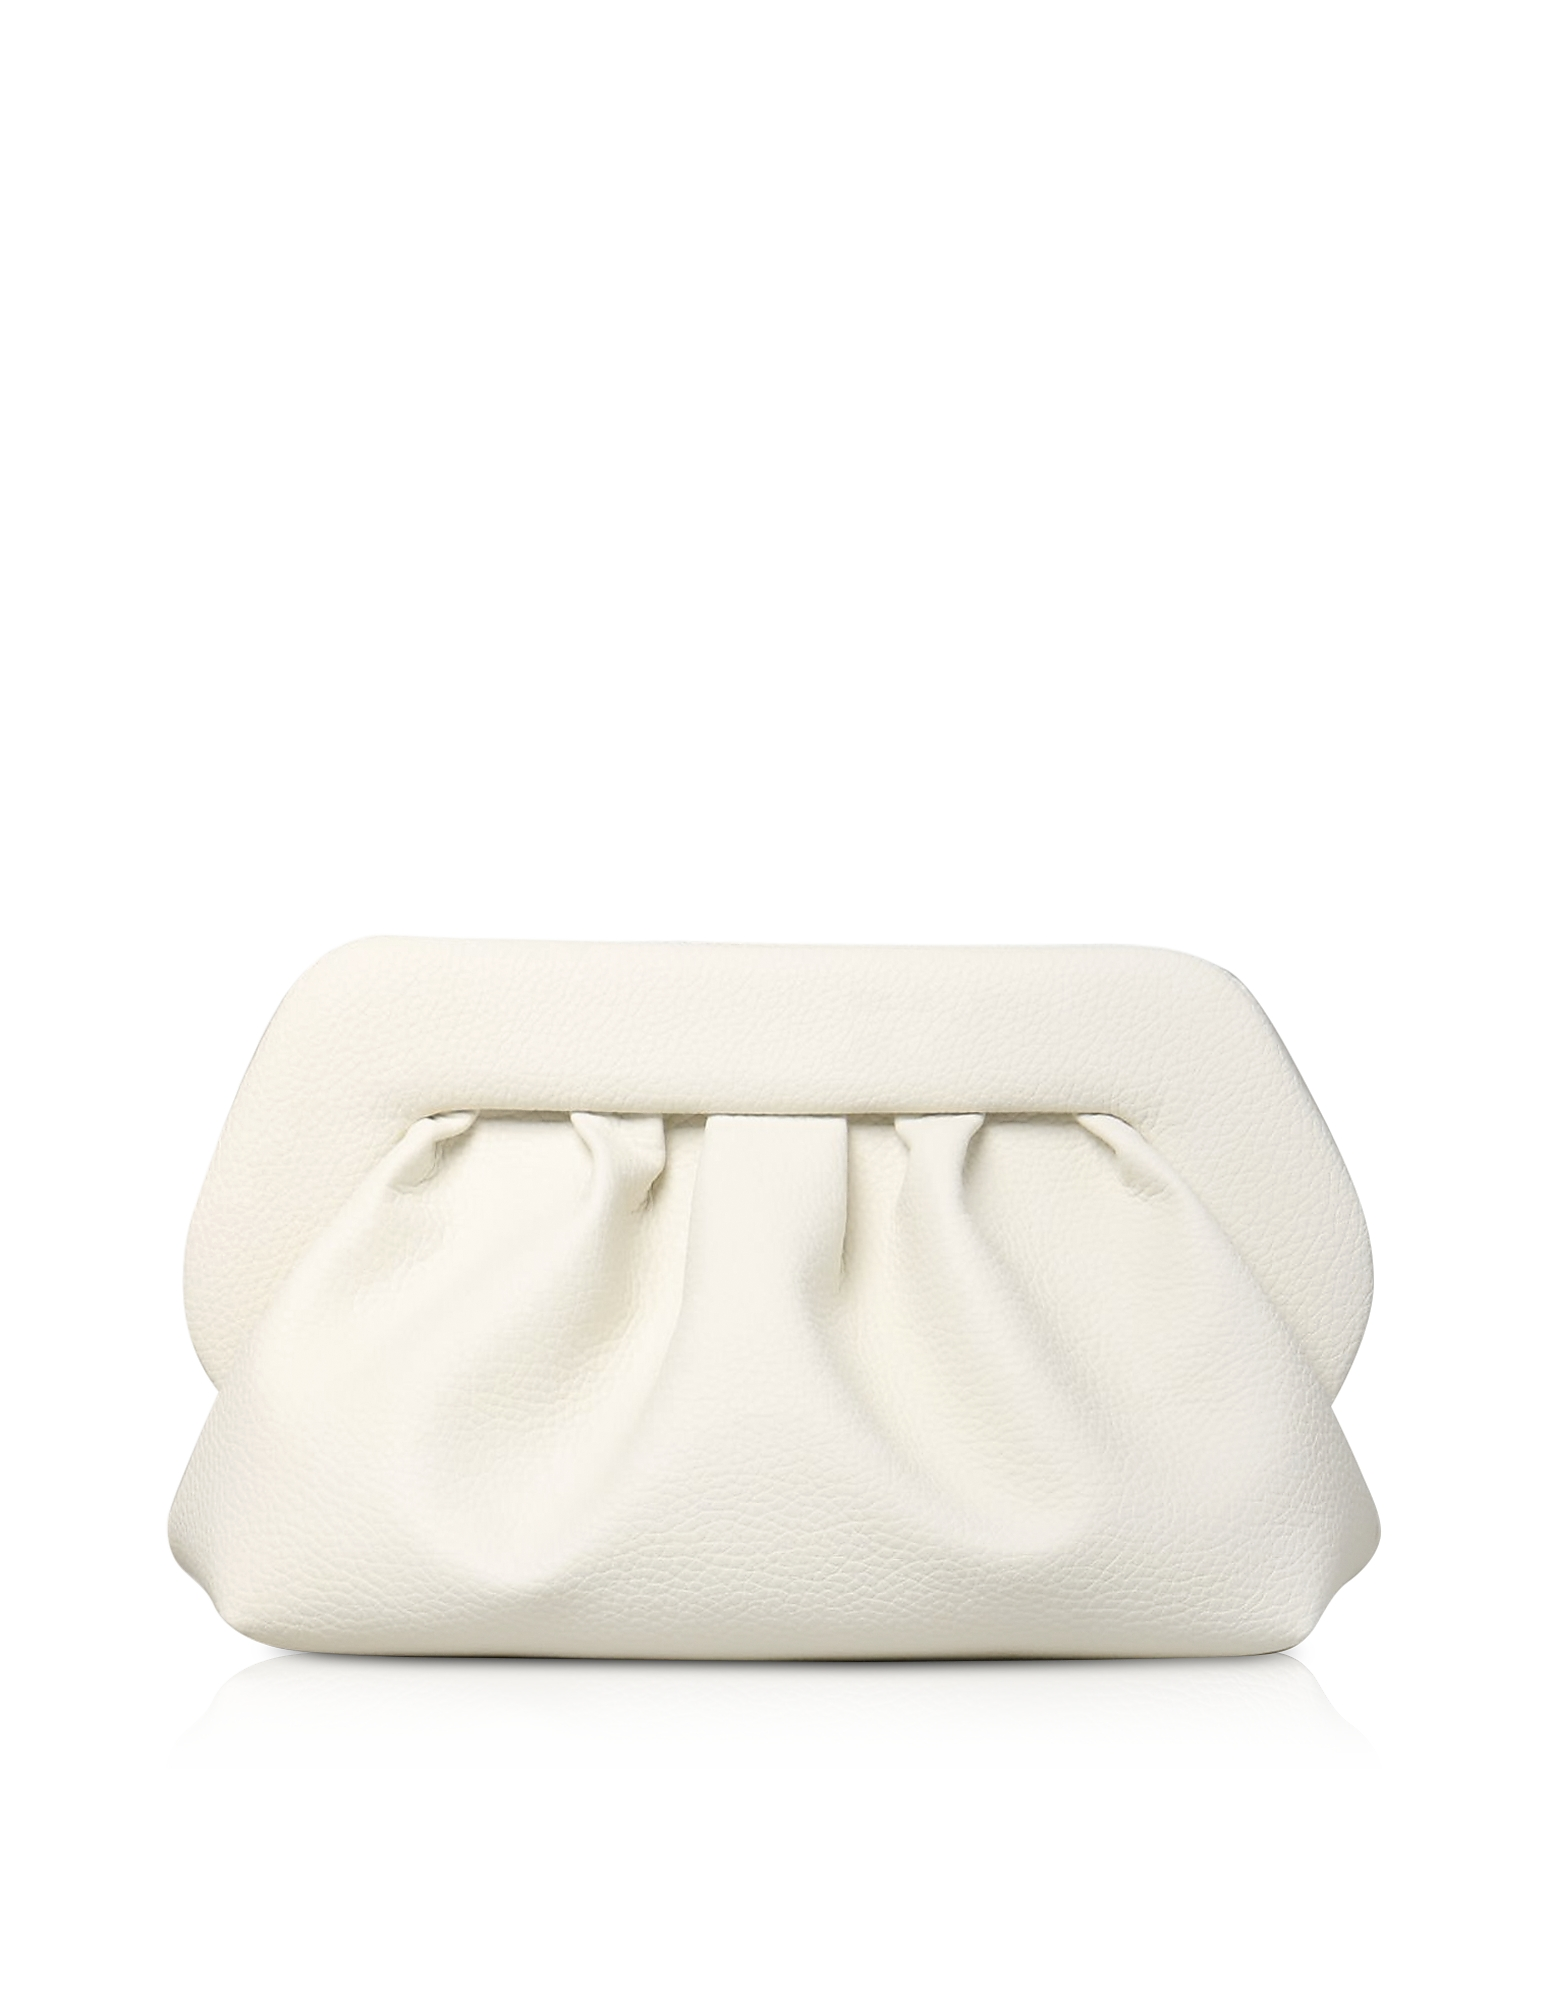 THEMOIRÉ Designer Handbags, White Grained Leather Pouch Bag